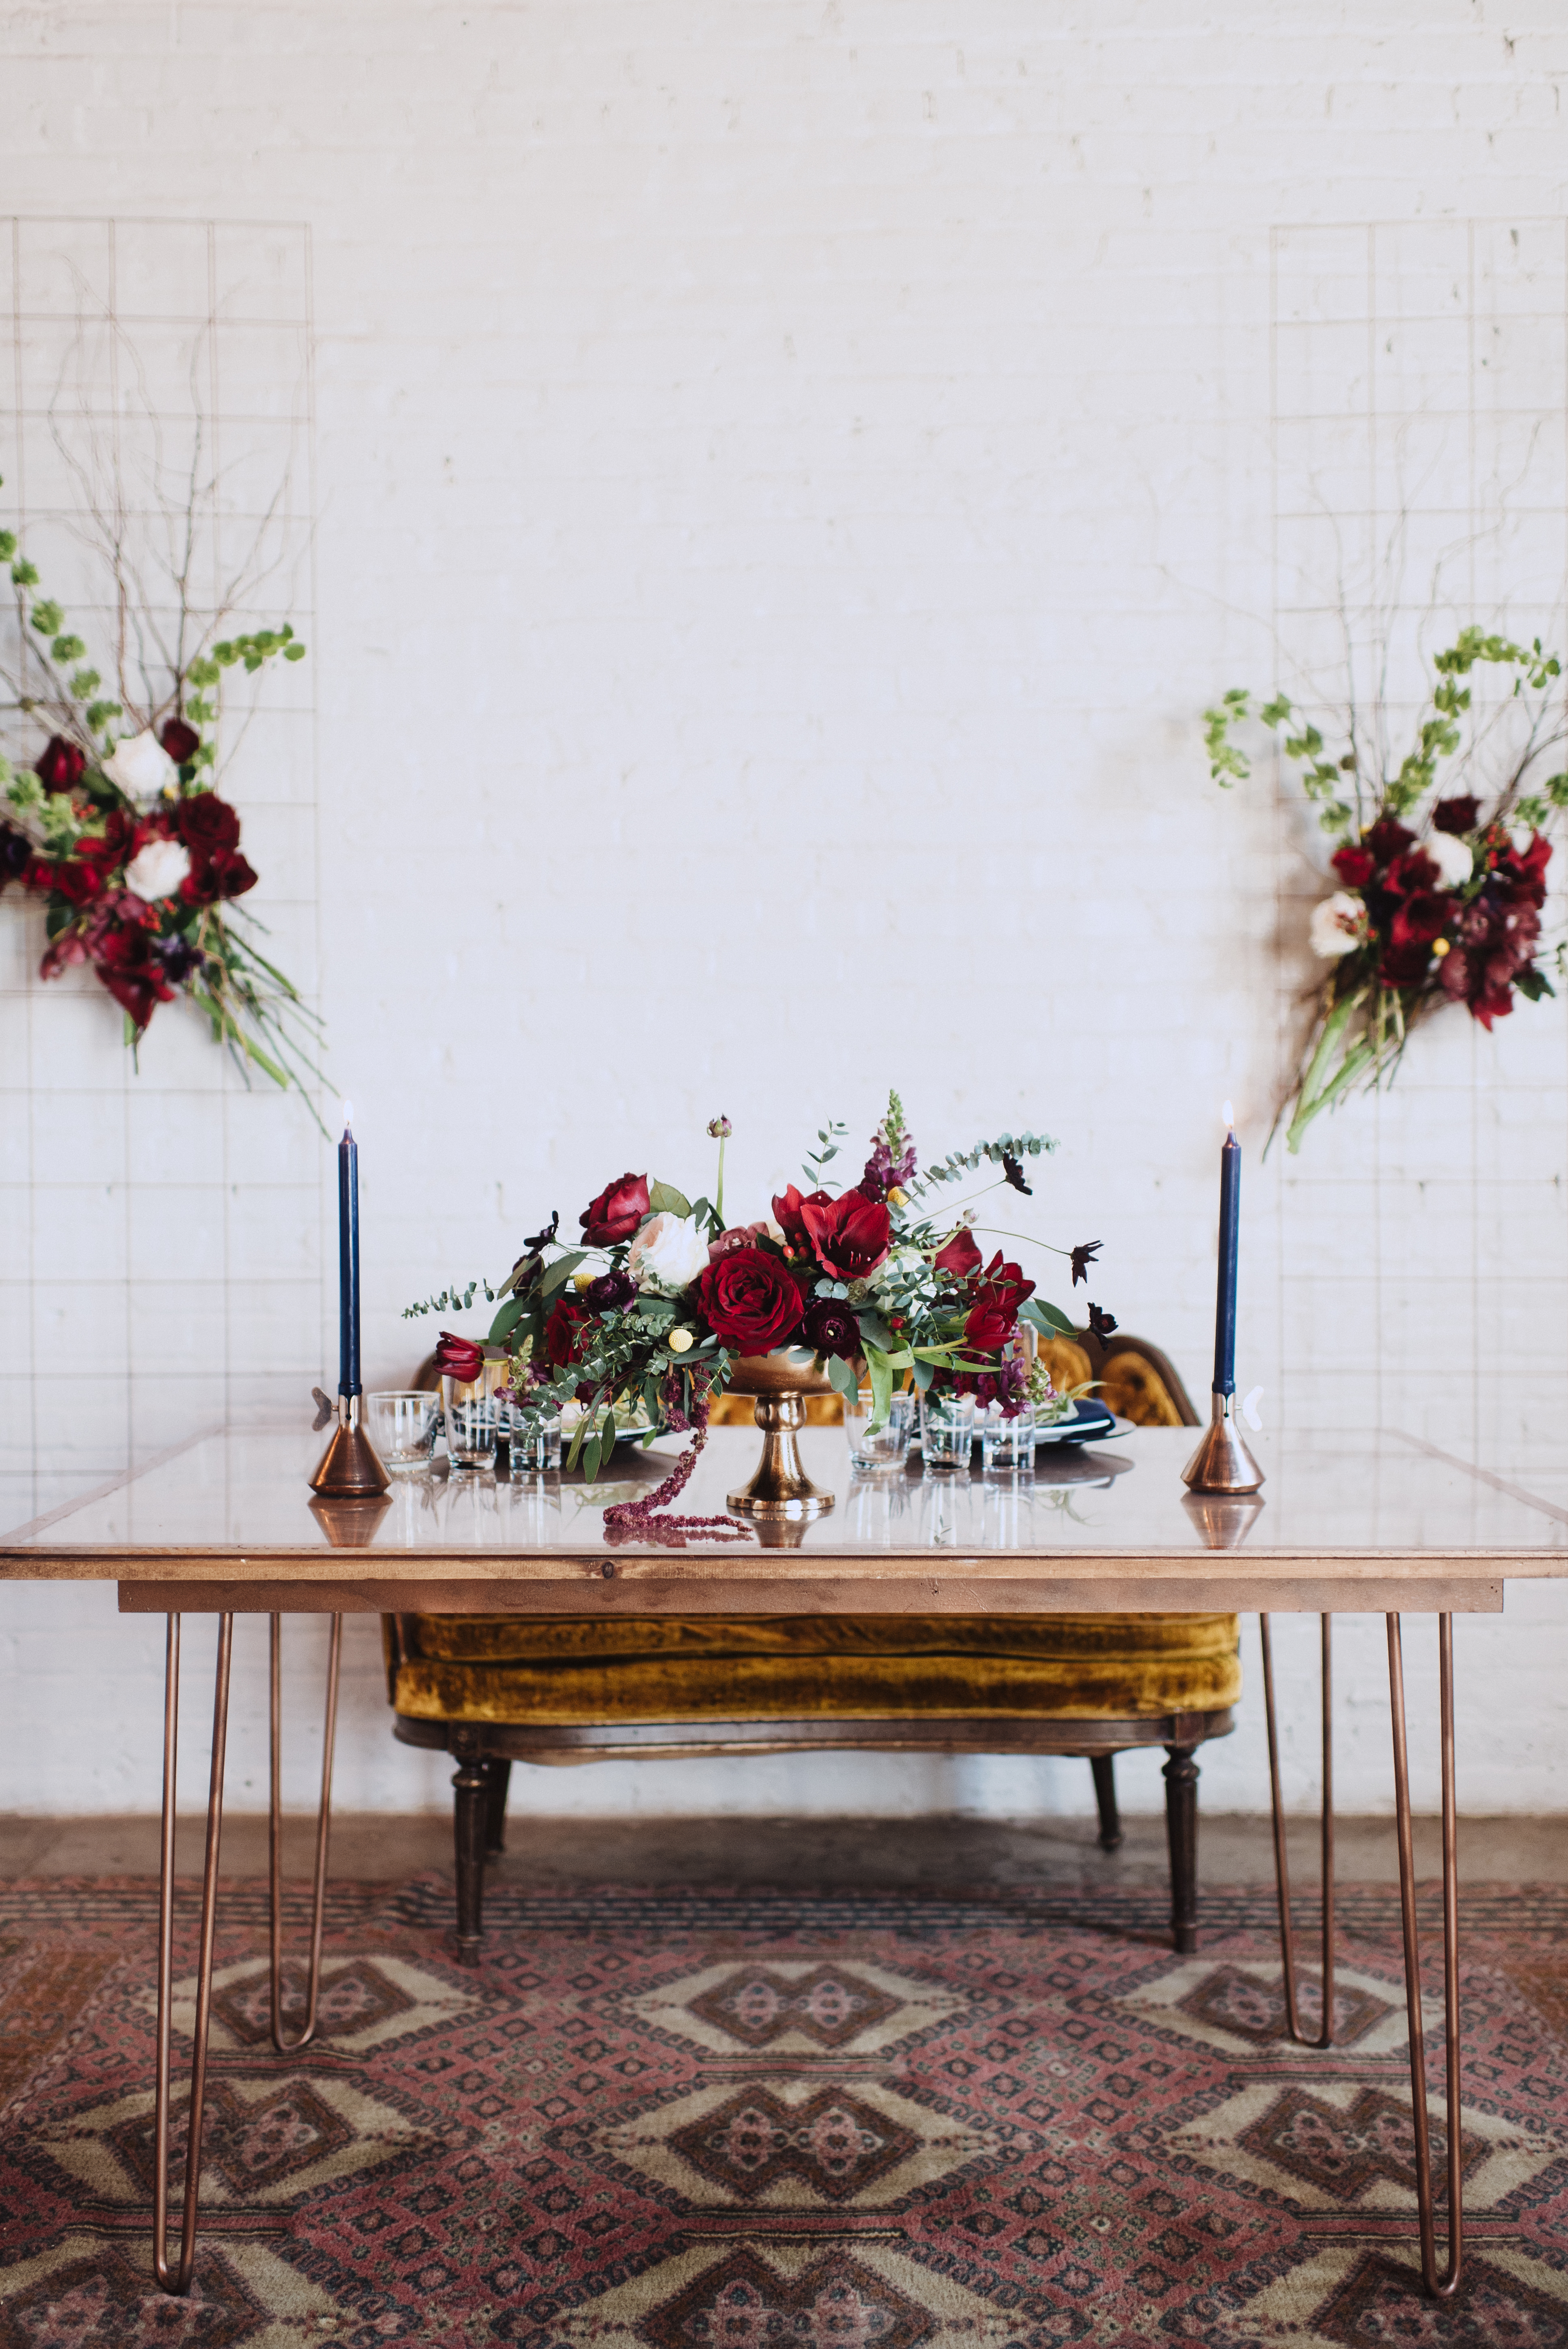 Moody Industrial Chic Wedding Inspiration - United With Love